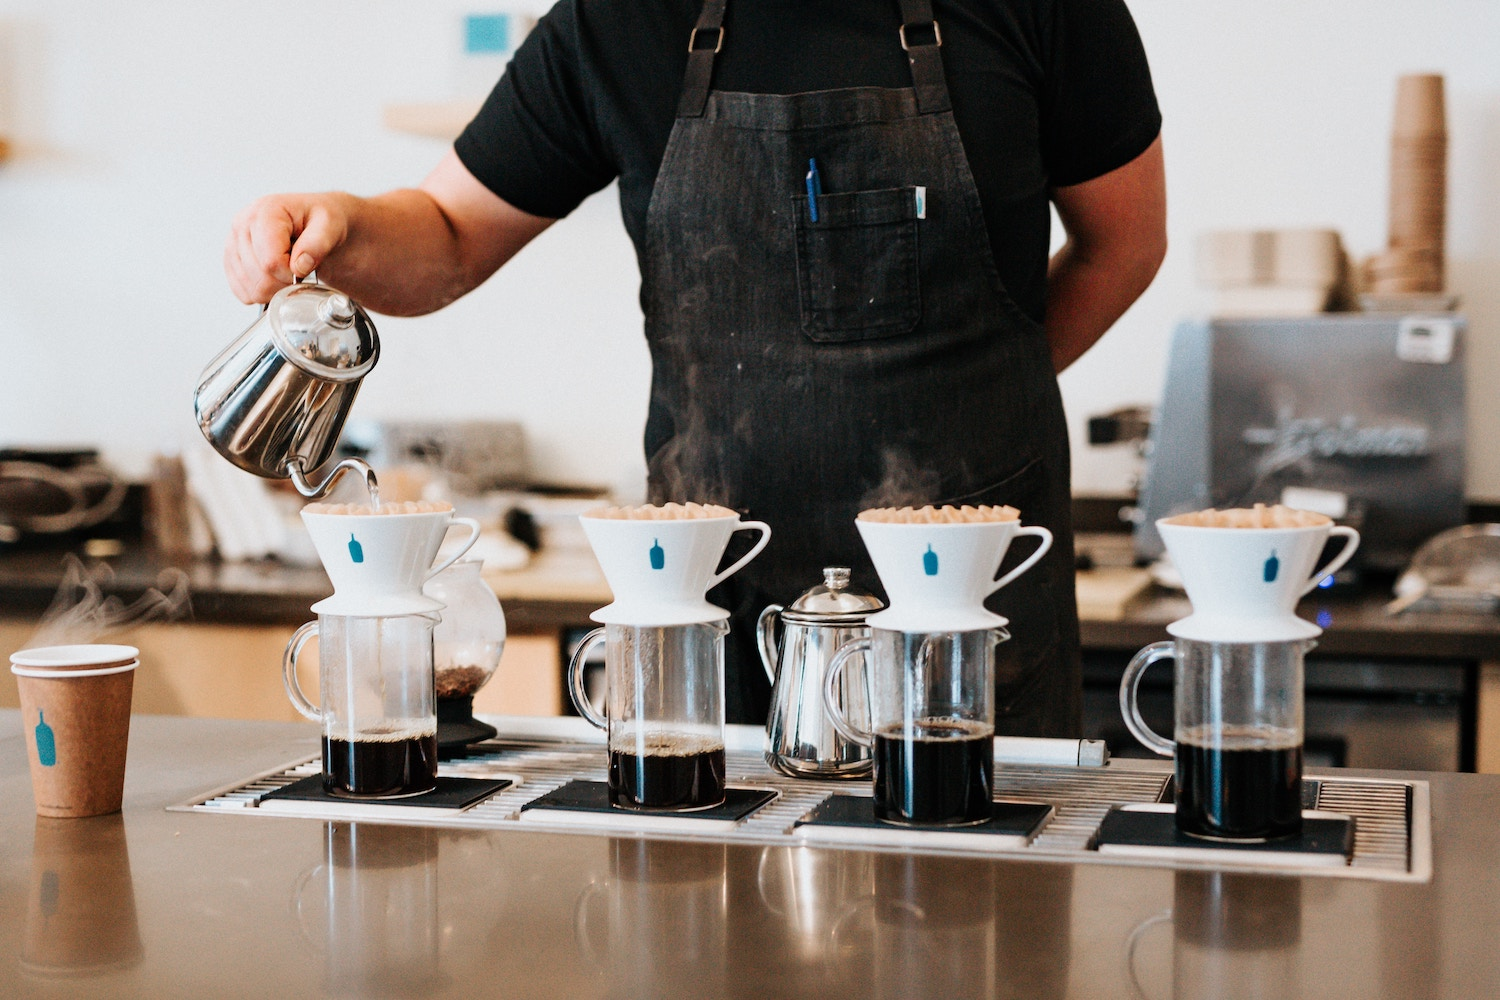 Blue Bottle Coffee sustainability